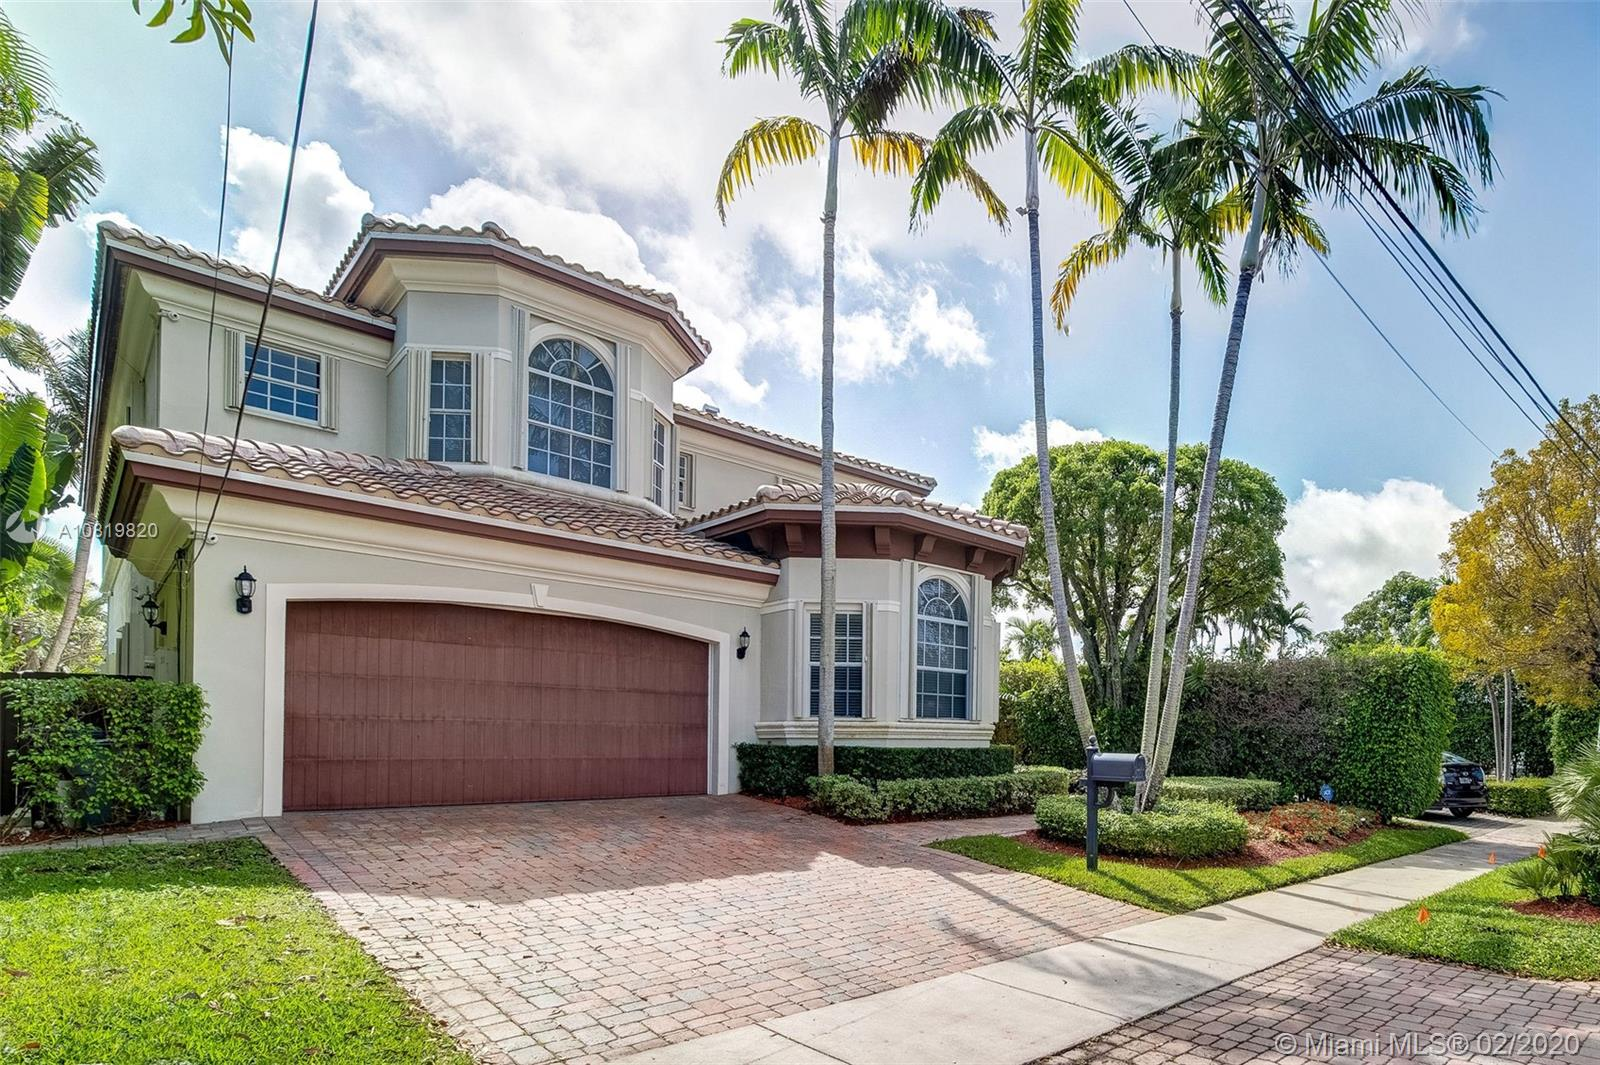 Details for 1490 Cleveland Rd, Miami Beach, FL 33141